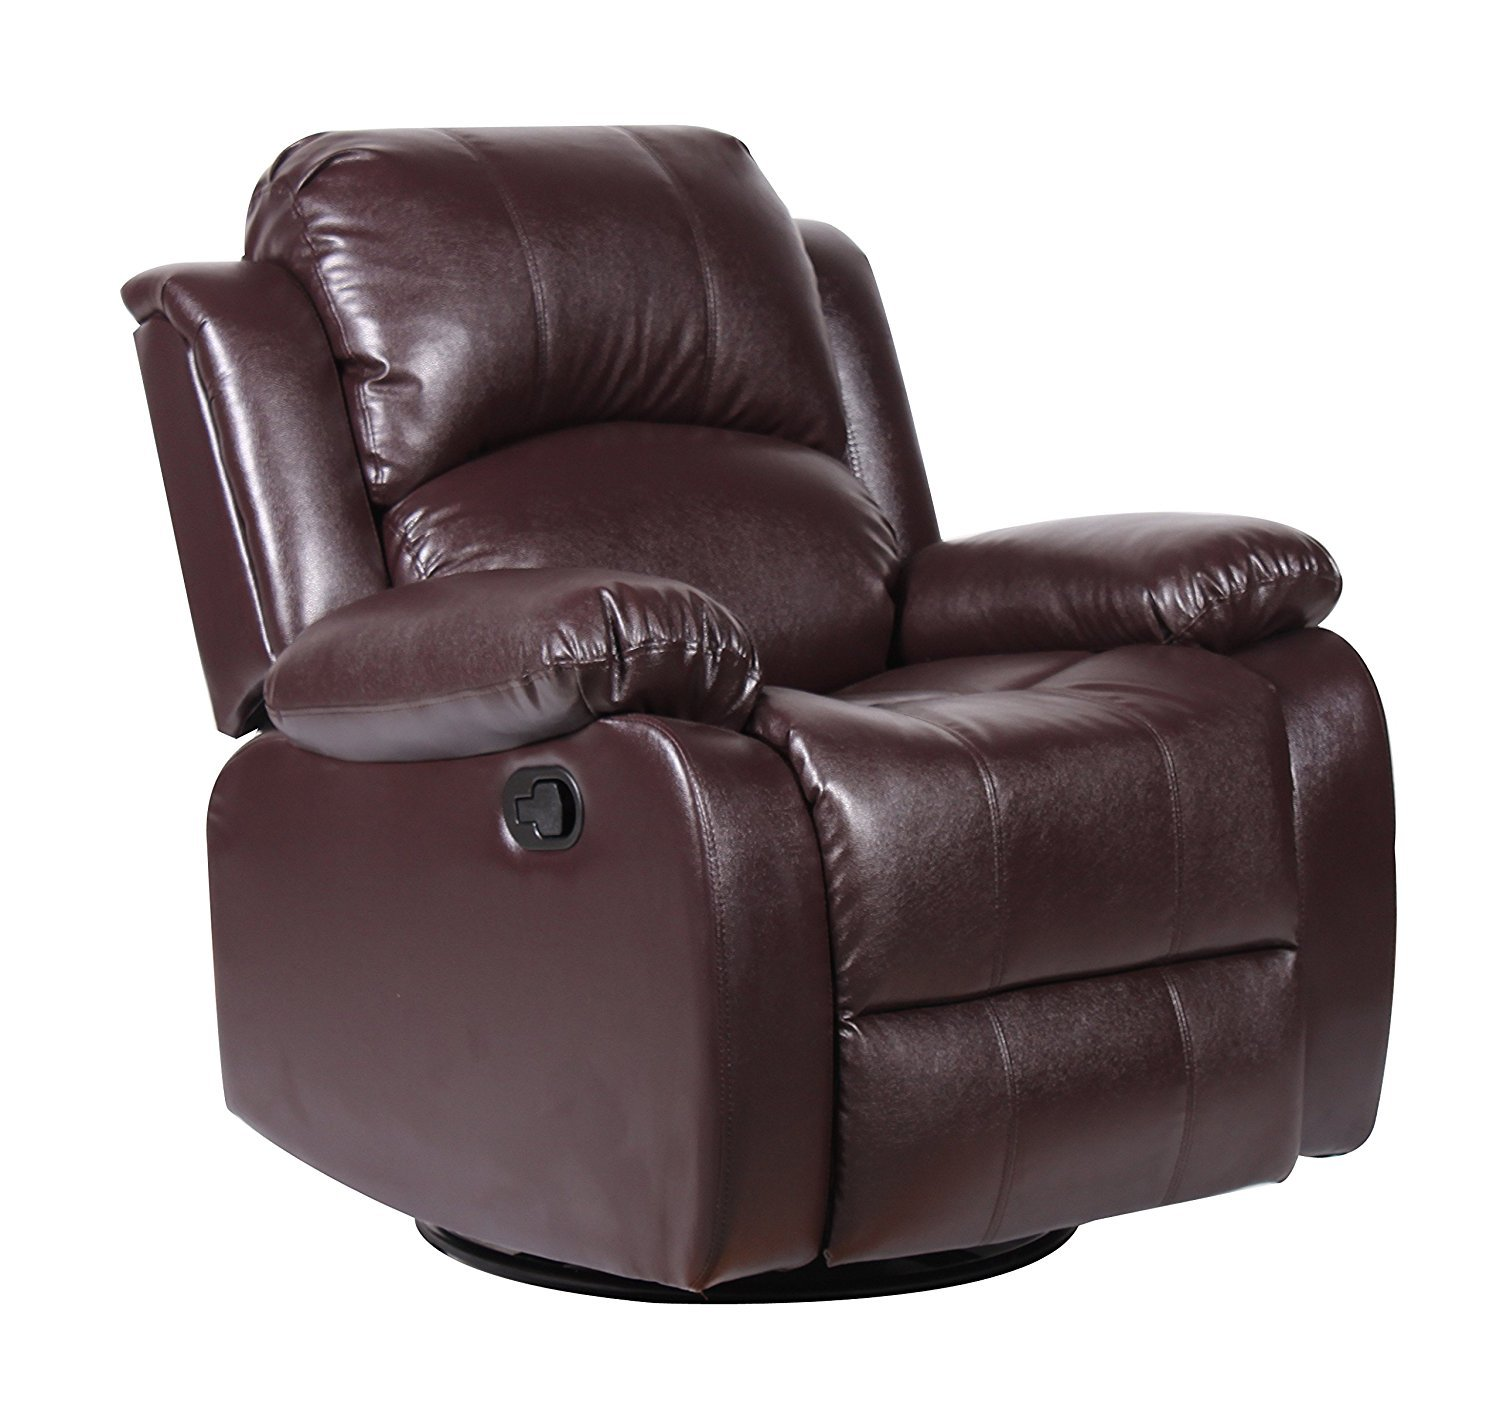 arm chair rocker gaming chairs for sale swivel living room home furniture design